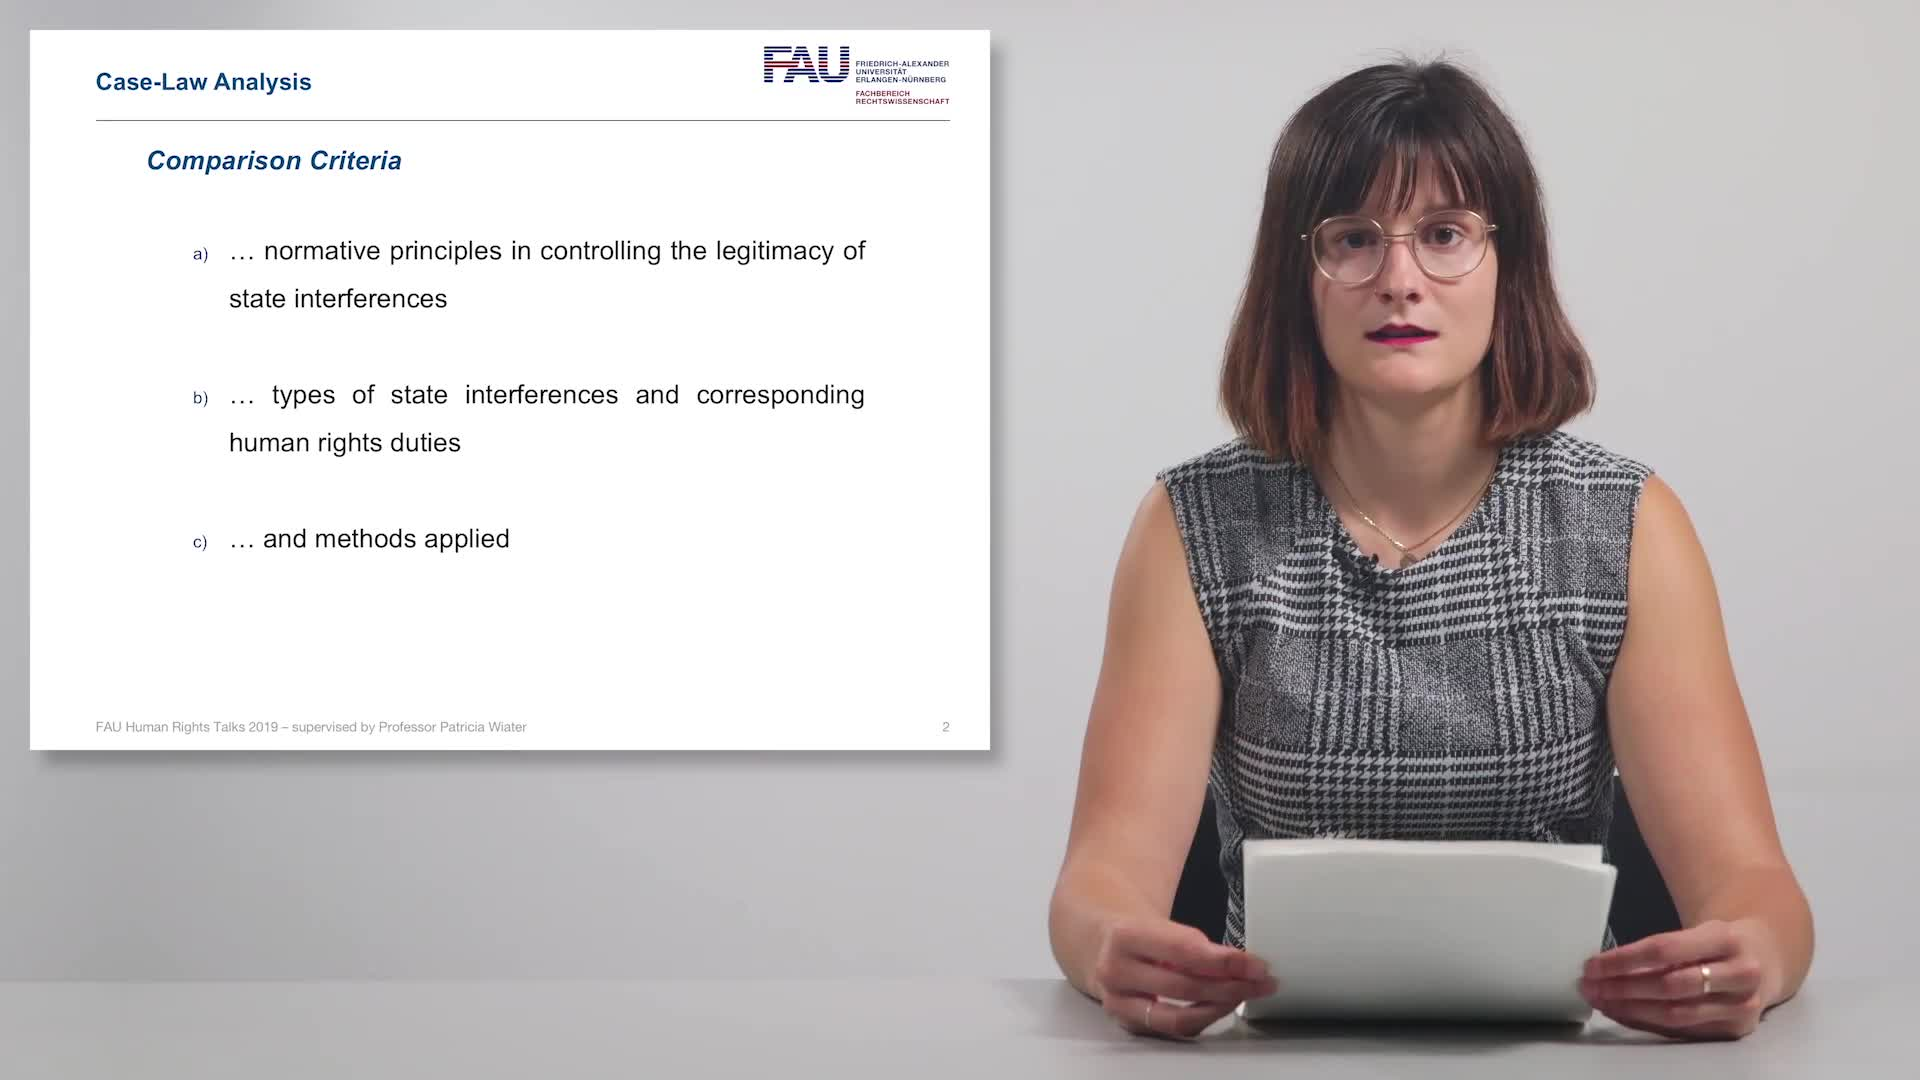 FAU Human Rights Talks – Summer Term 2019: Case-Law Analysis preview image